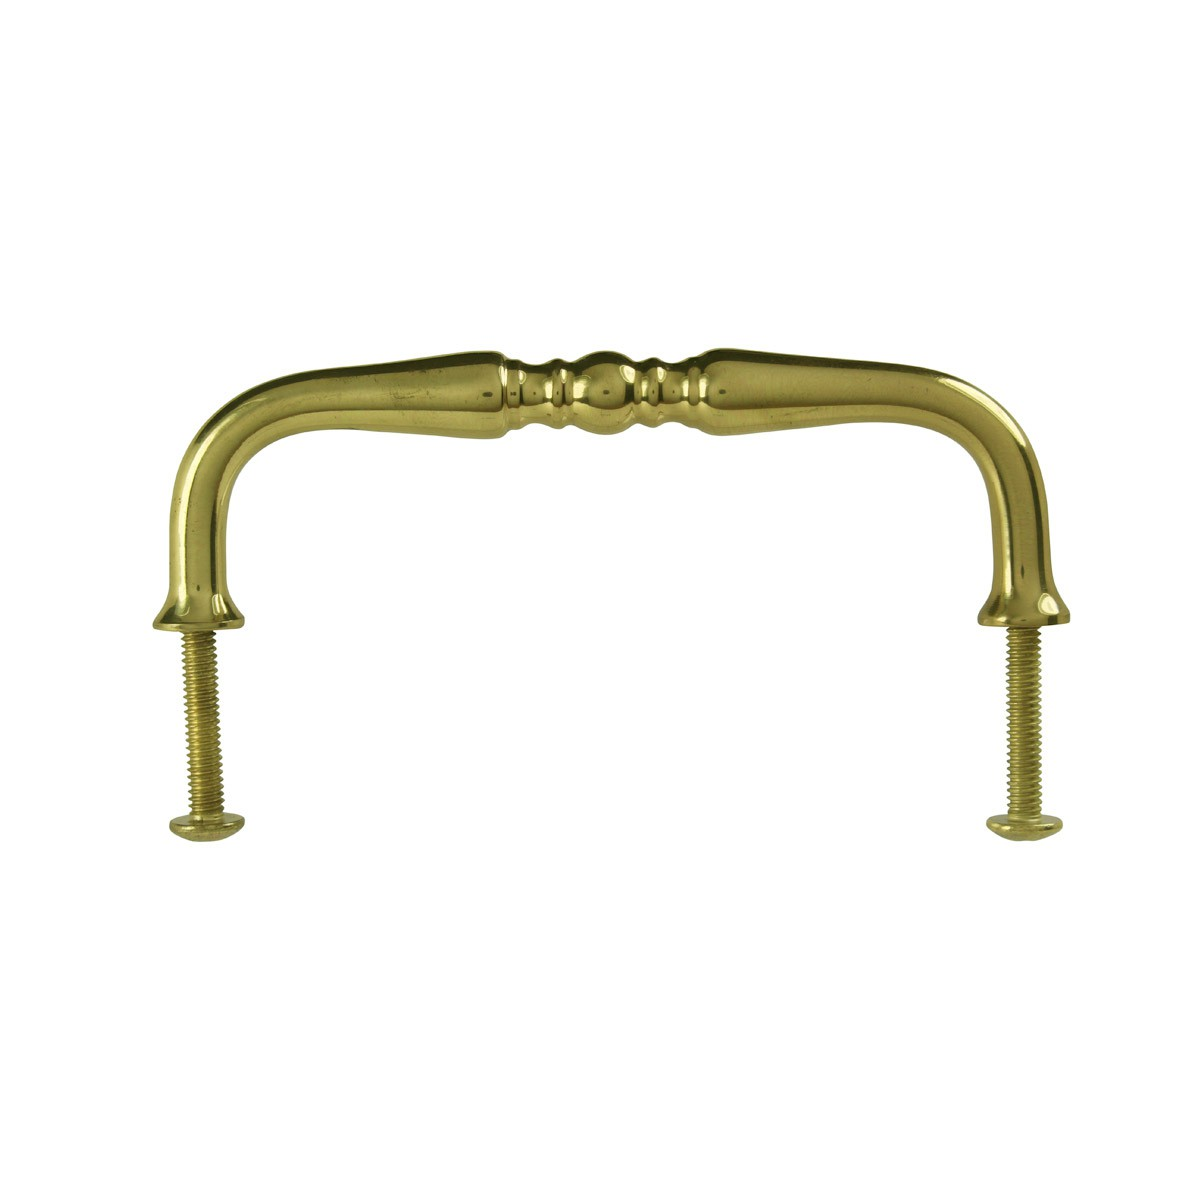 Cabinet  Bail Pull Bright Solid Brass Spooled 3 12 Furniture Hardware Cabinet Pull Cabinet Hardware